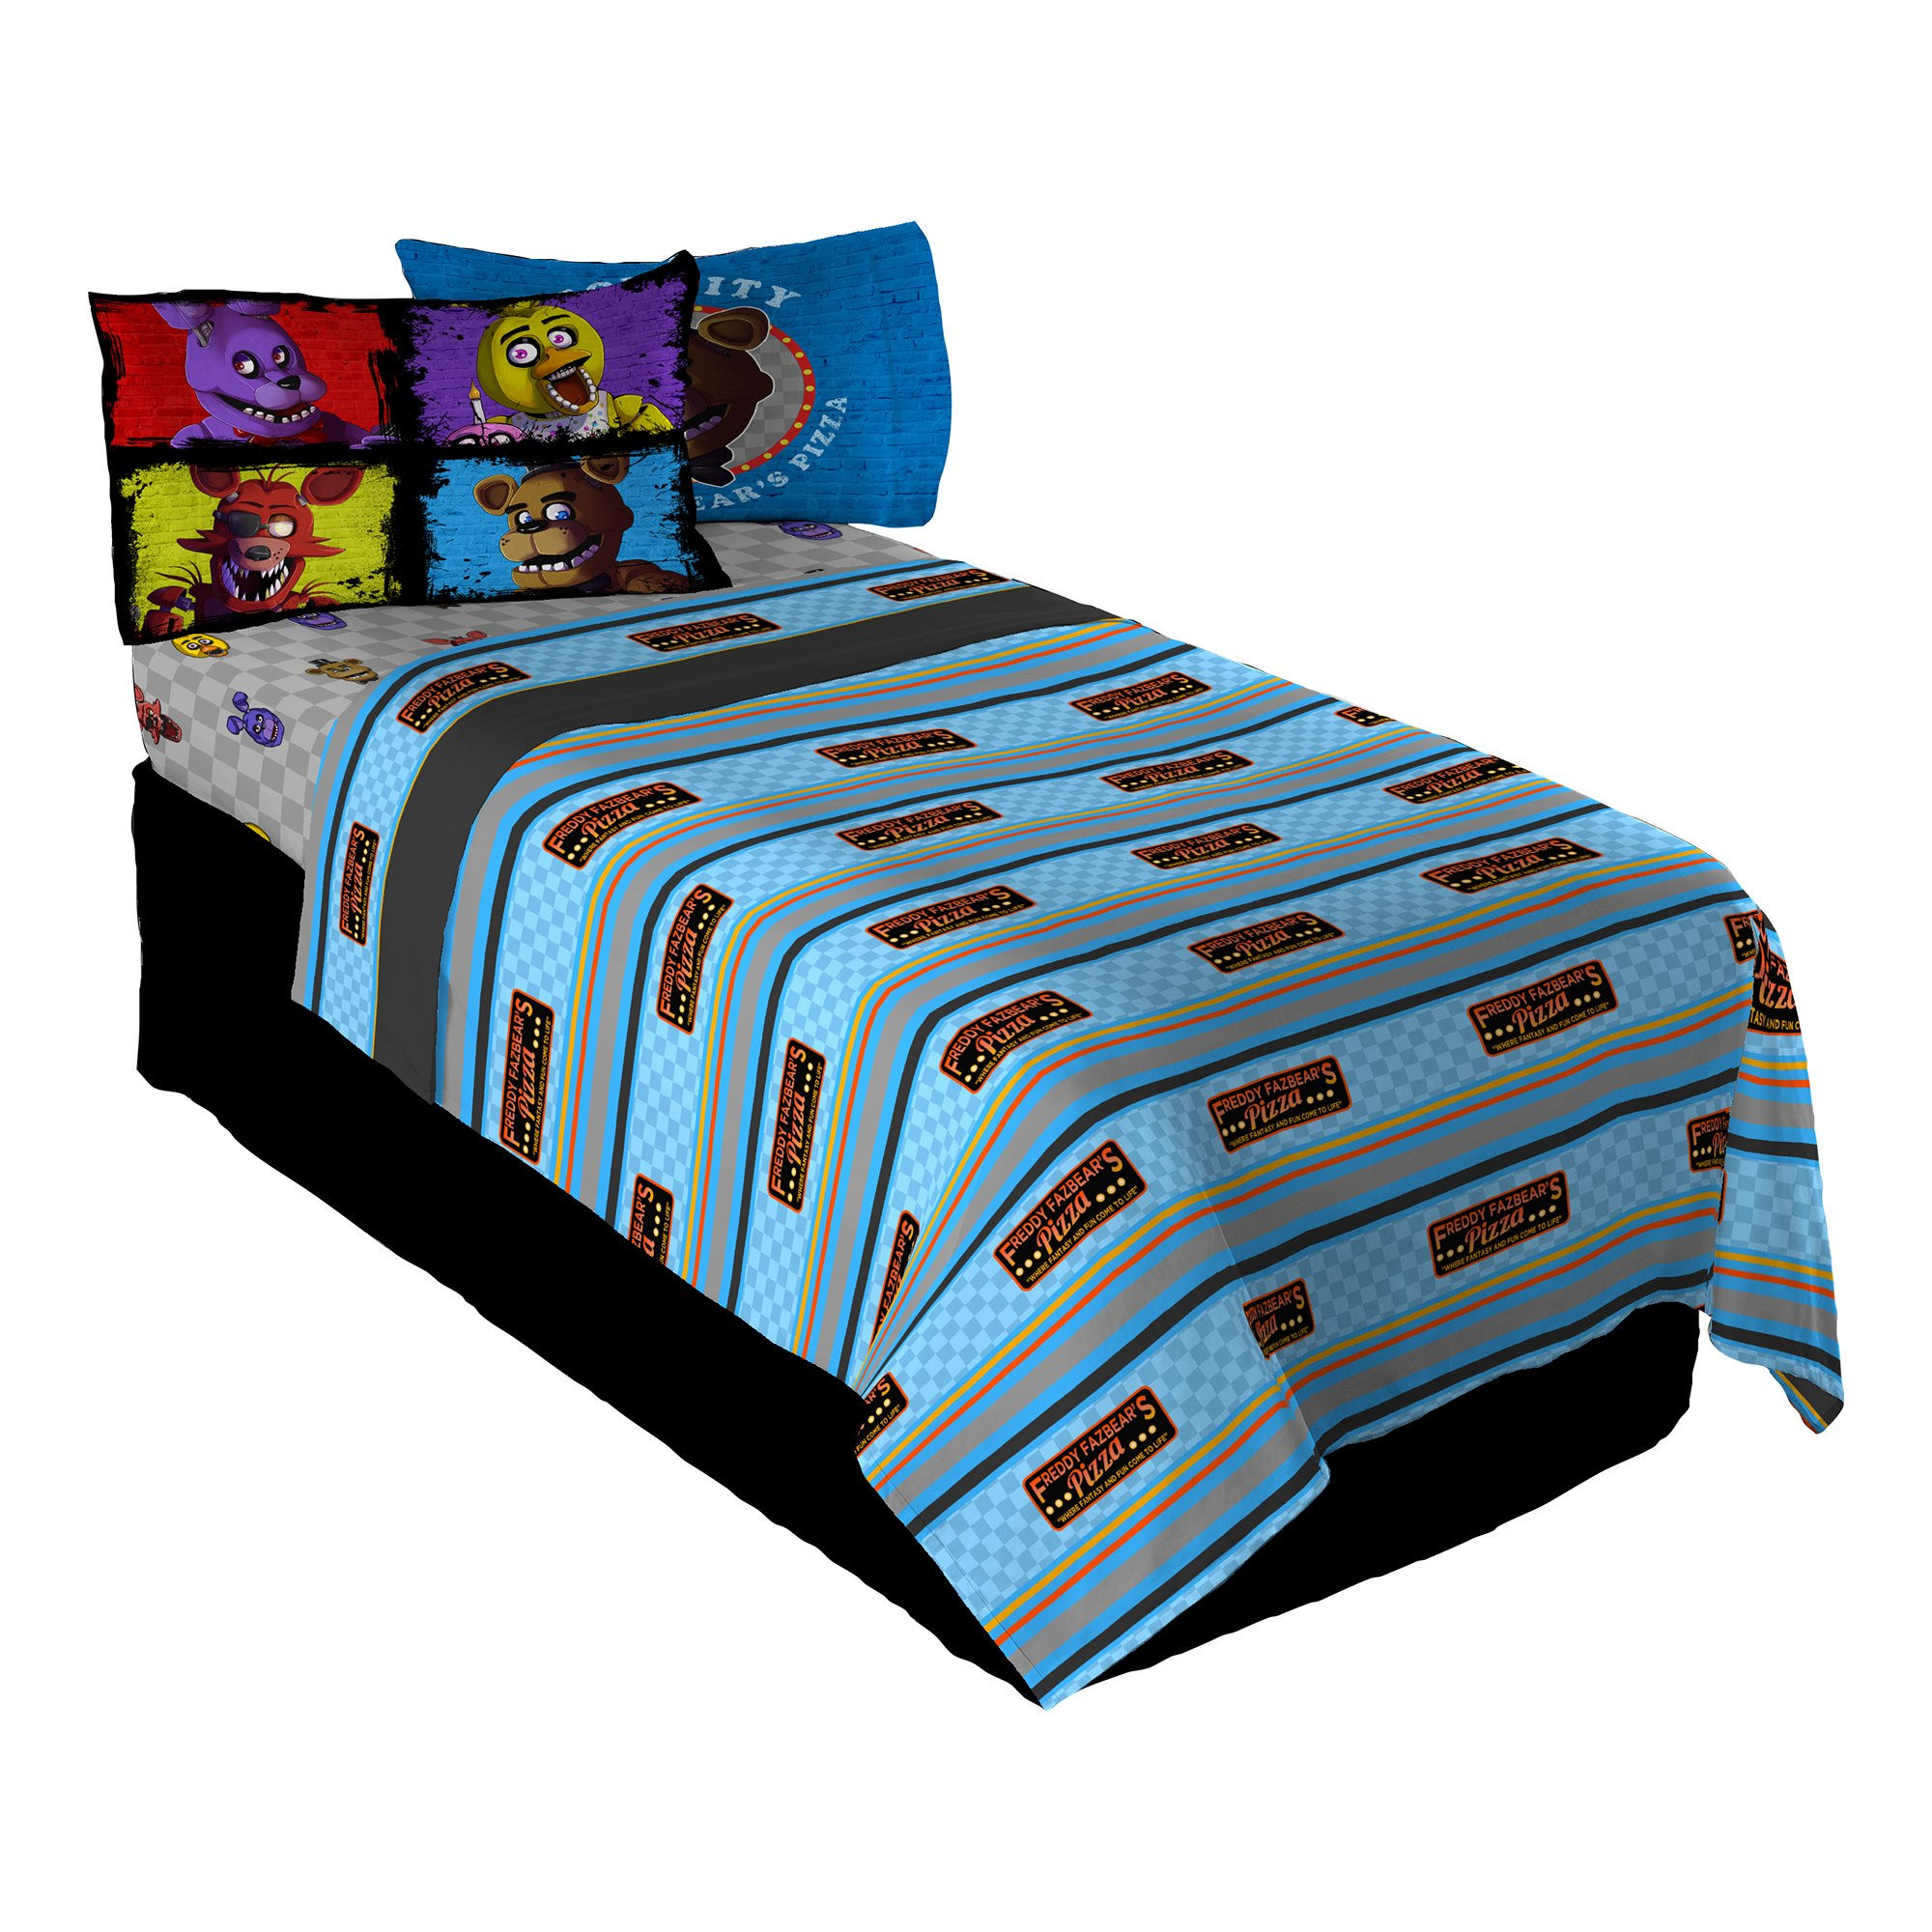 Scott Games Five Nights at Freddy's Pizza Security Twin Sheet Set